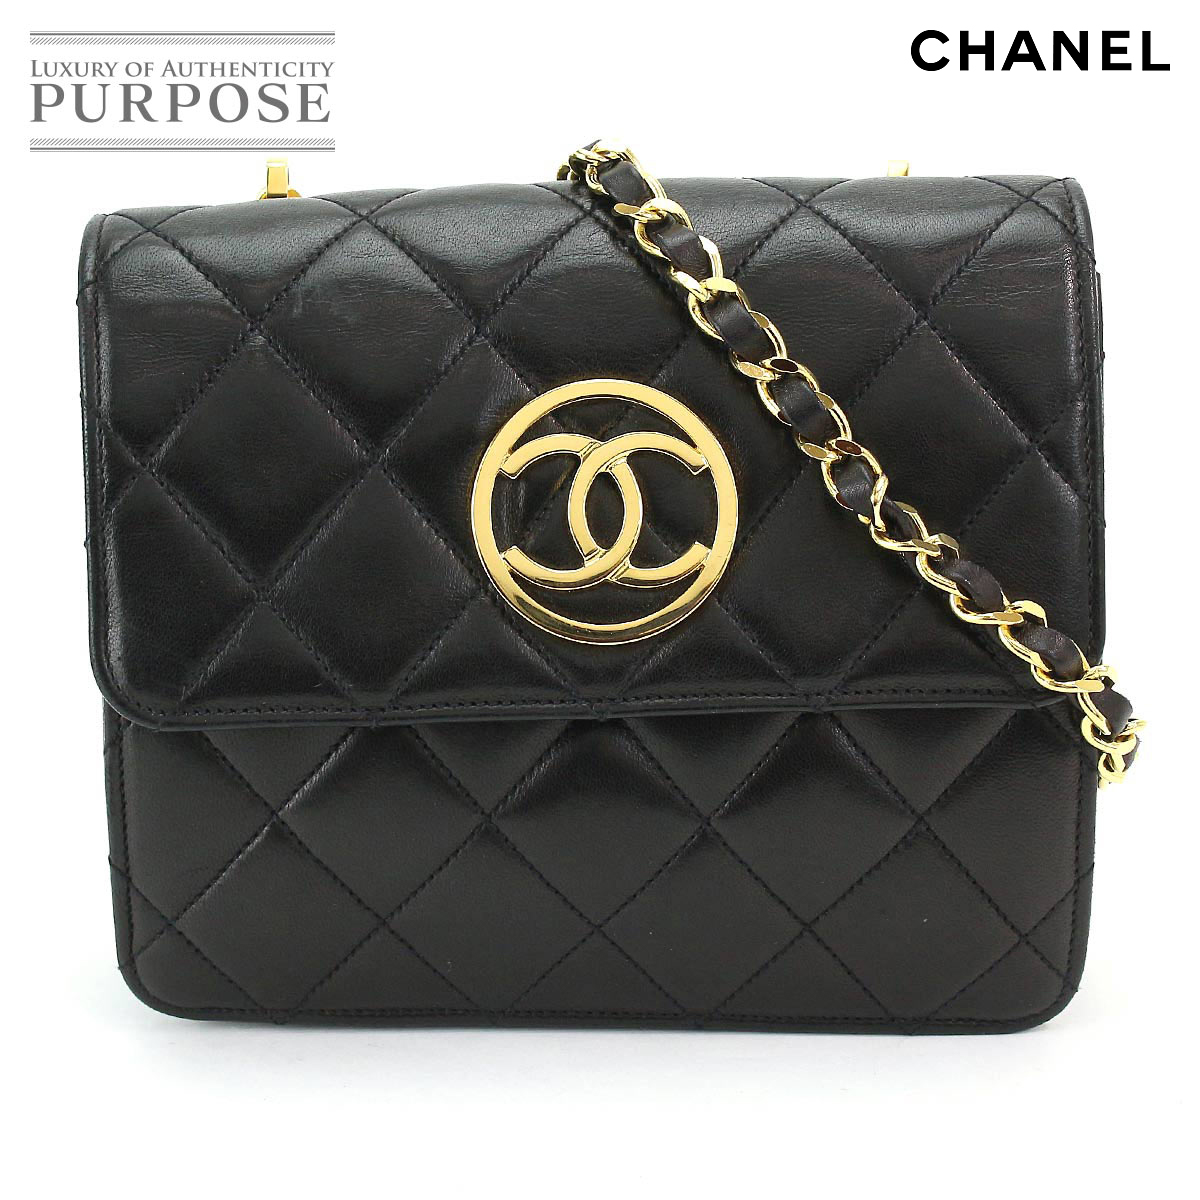 9a27556266288 Purpose Inc  Chanel CHANEL matelasse chain shoulder bag leather black A2900 CC  logo here mark